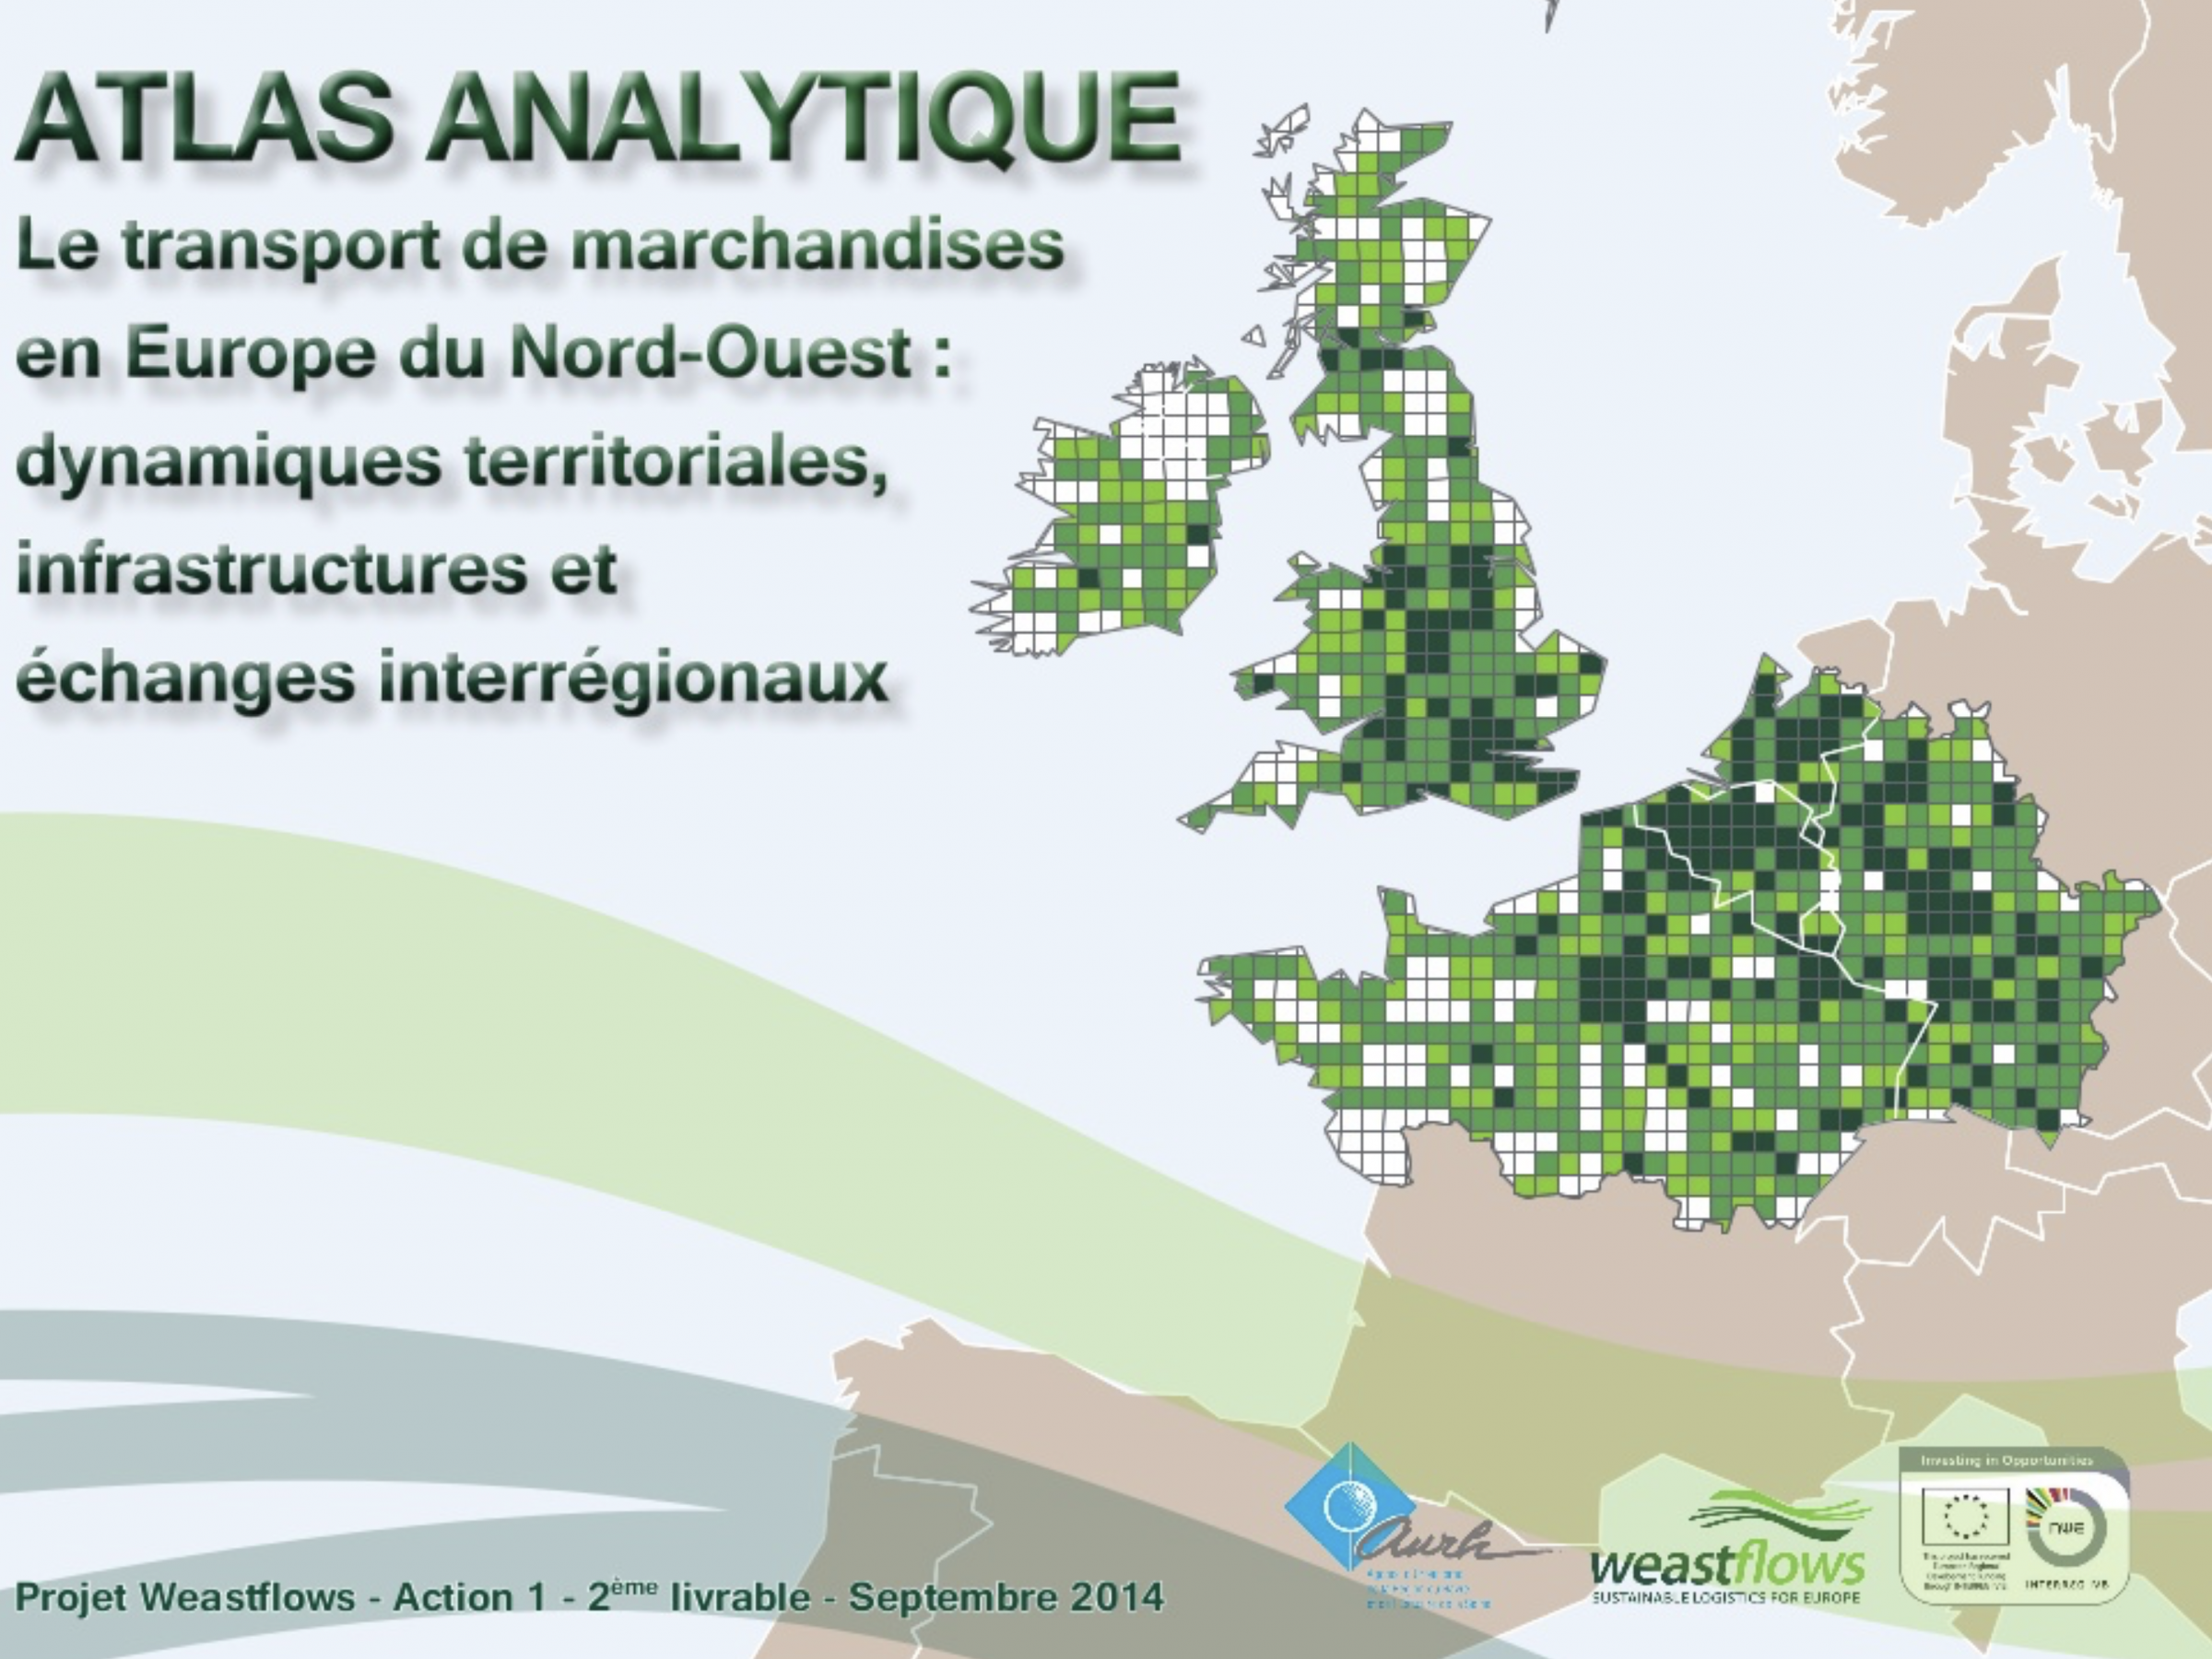 Atlas analytique du transport de marchandises en Europe du Nord-Ouest